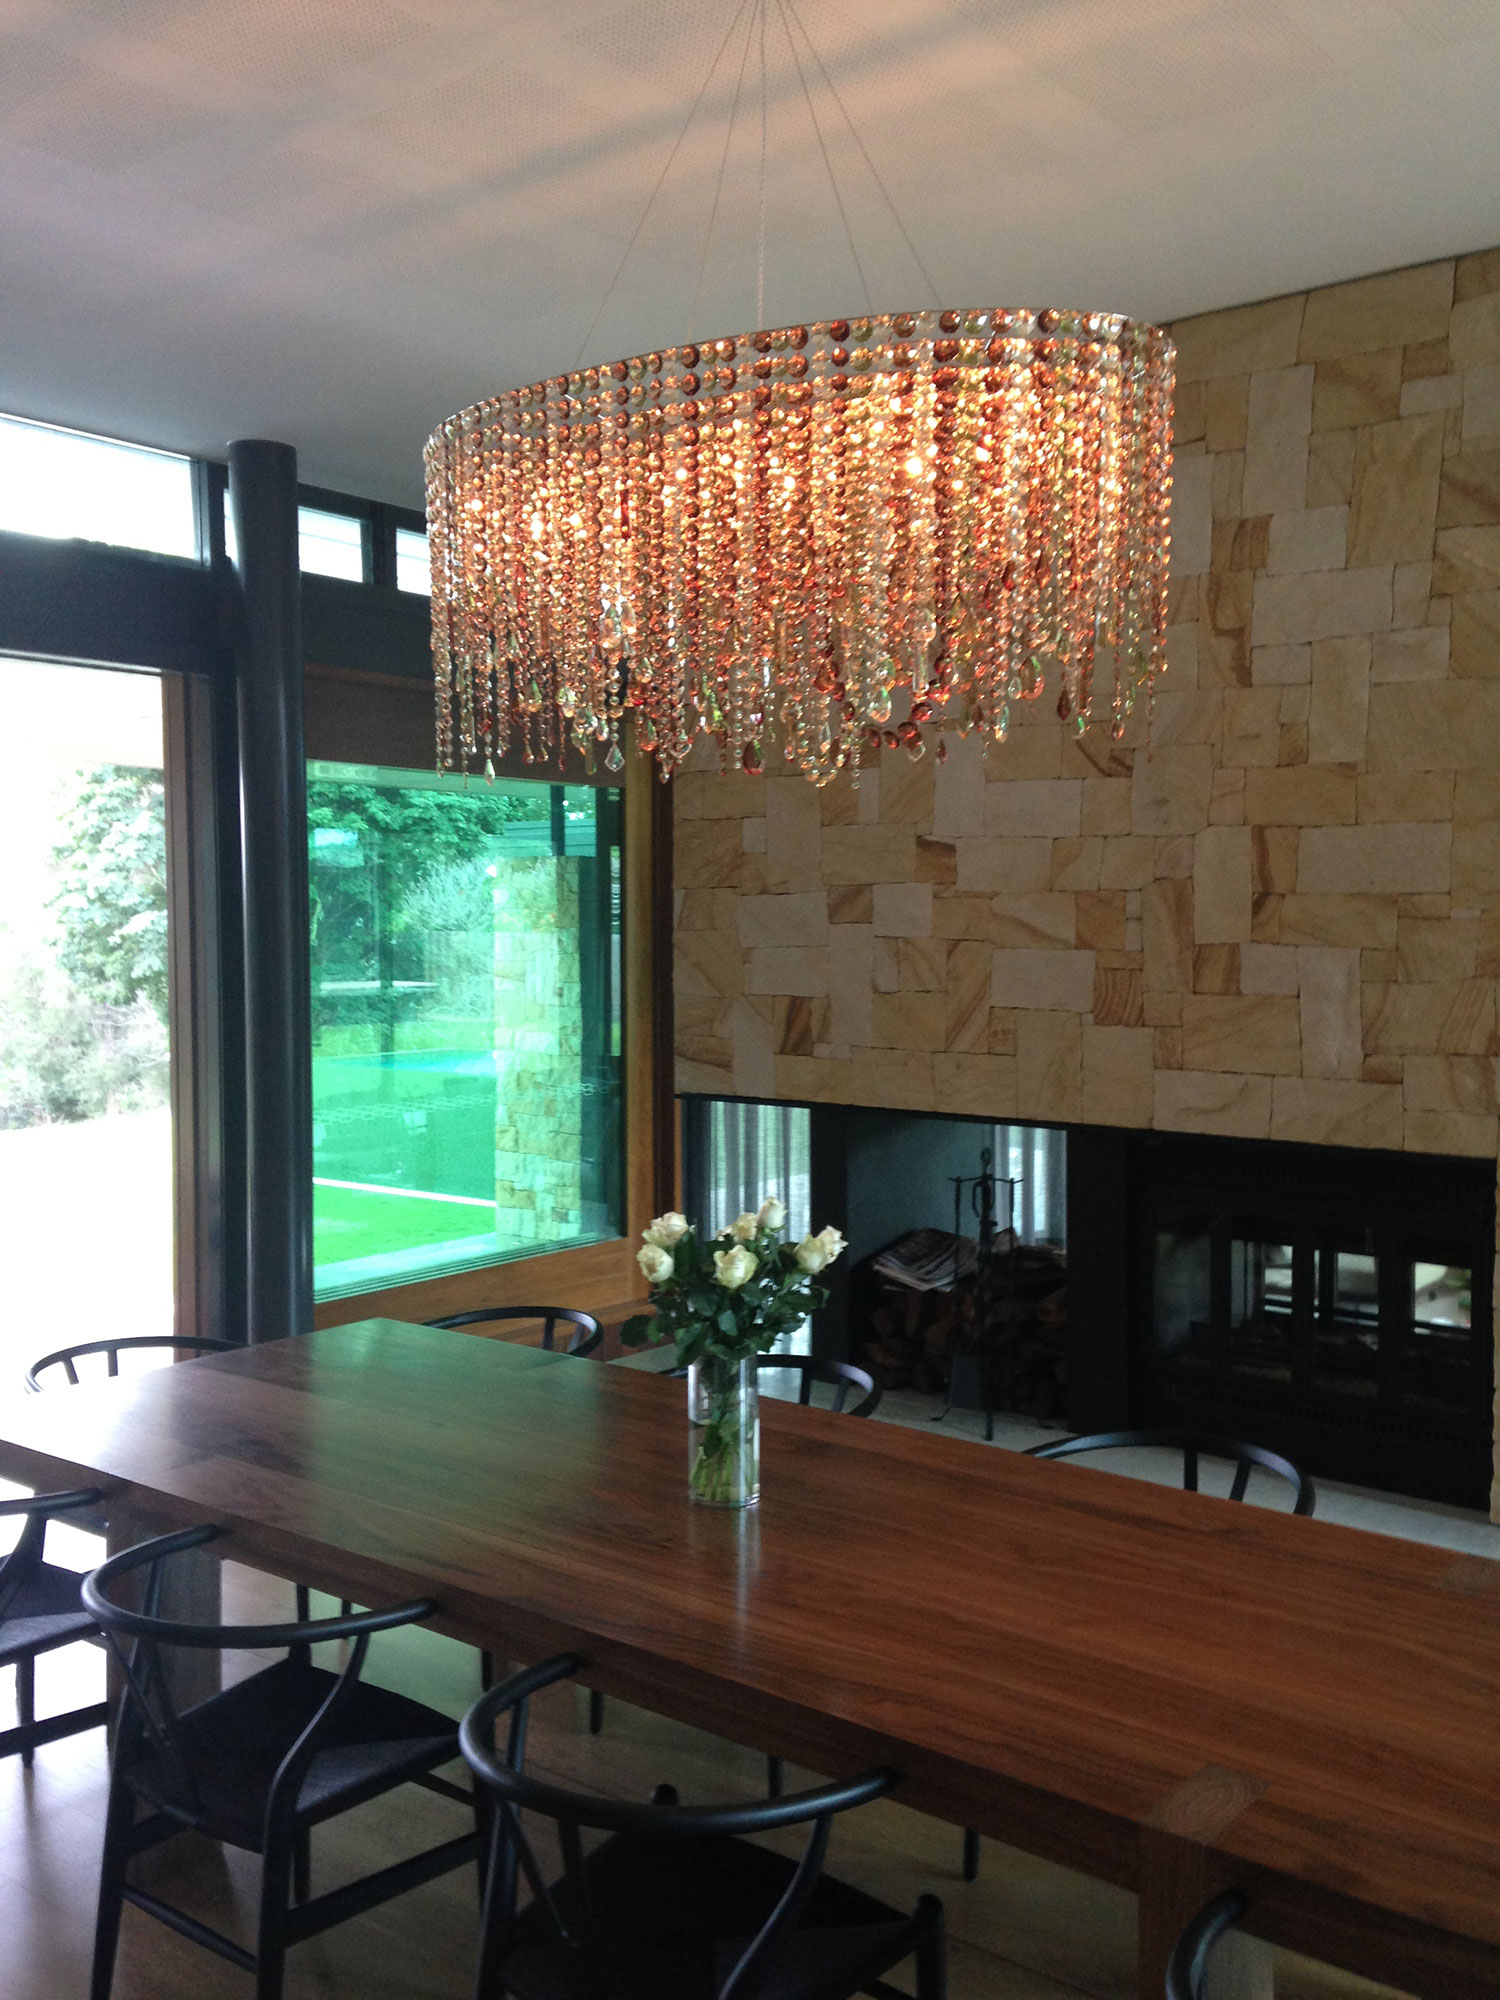 Crystal chandeliers lolli e memmoli projects residentials zzk australia residence malvernweather Images